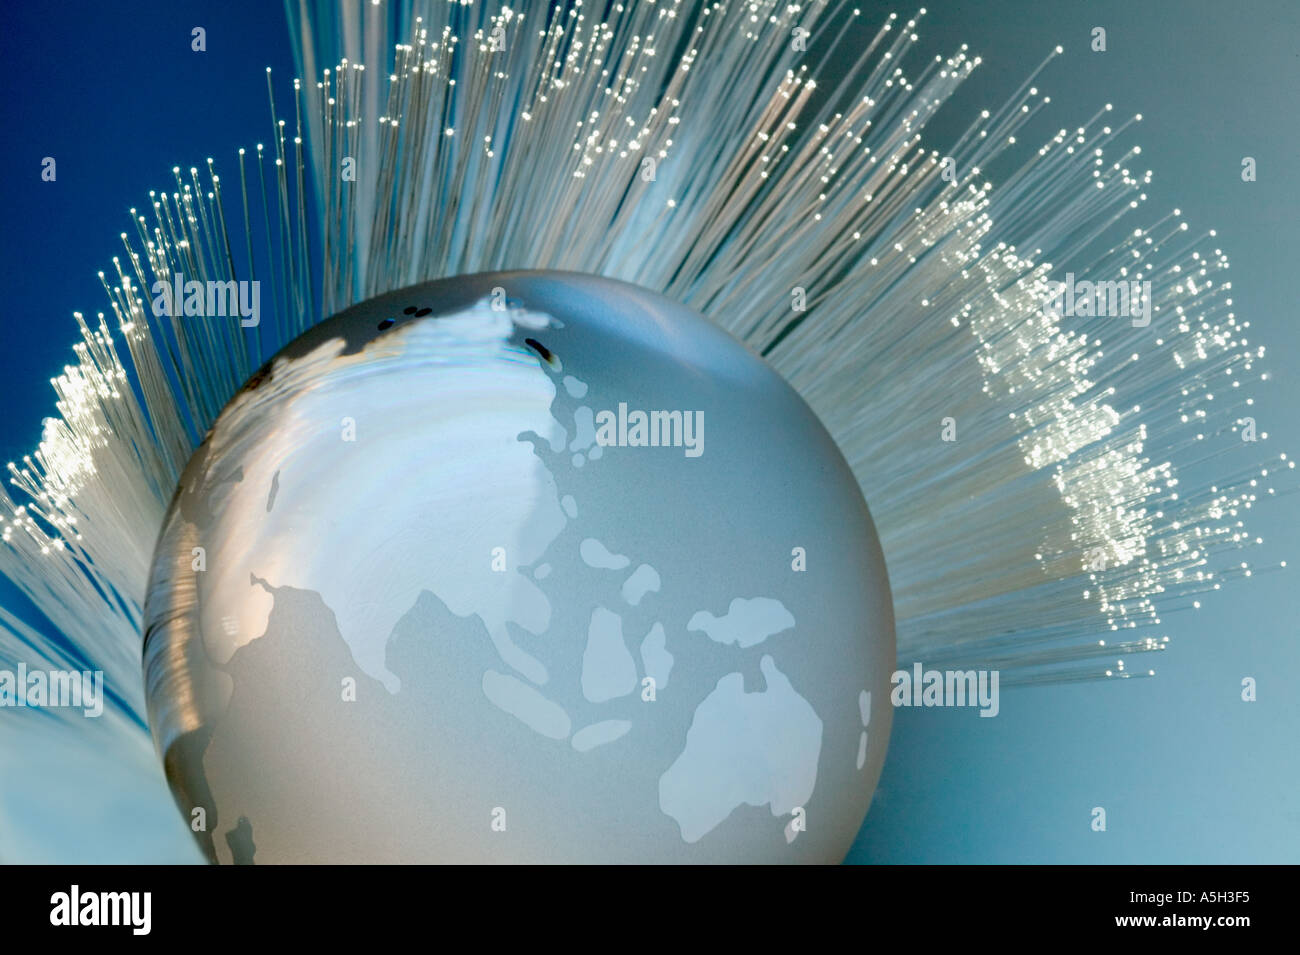 Fiber optical cables and globe - Stock Image